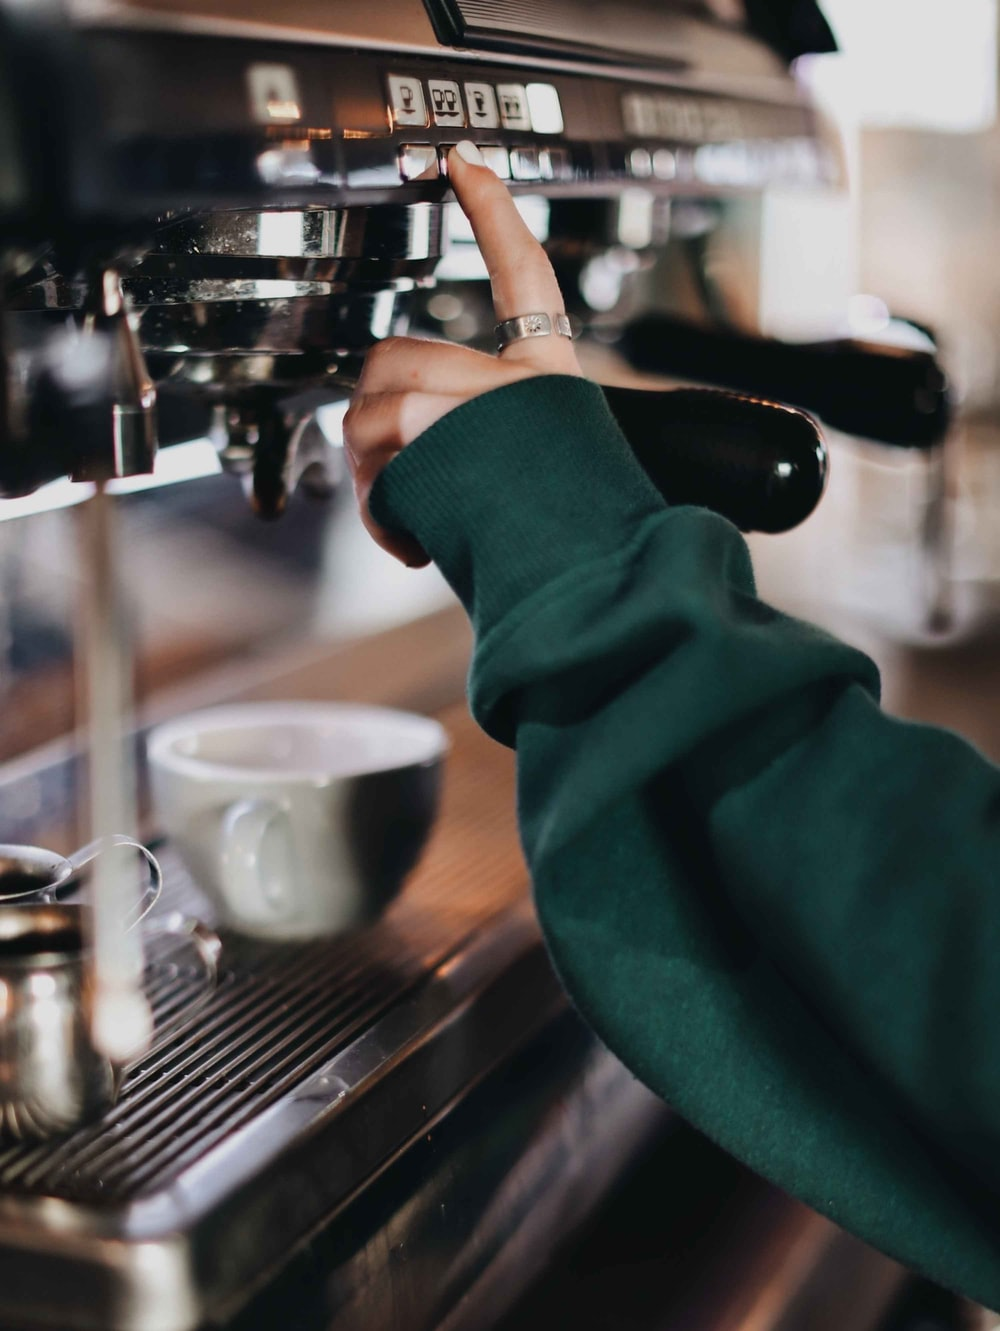 person in green long sleeve shirt holding silver and black espresso machine